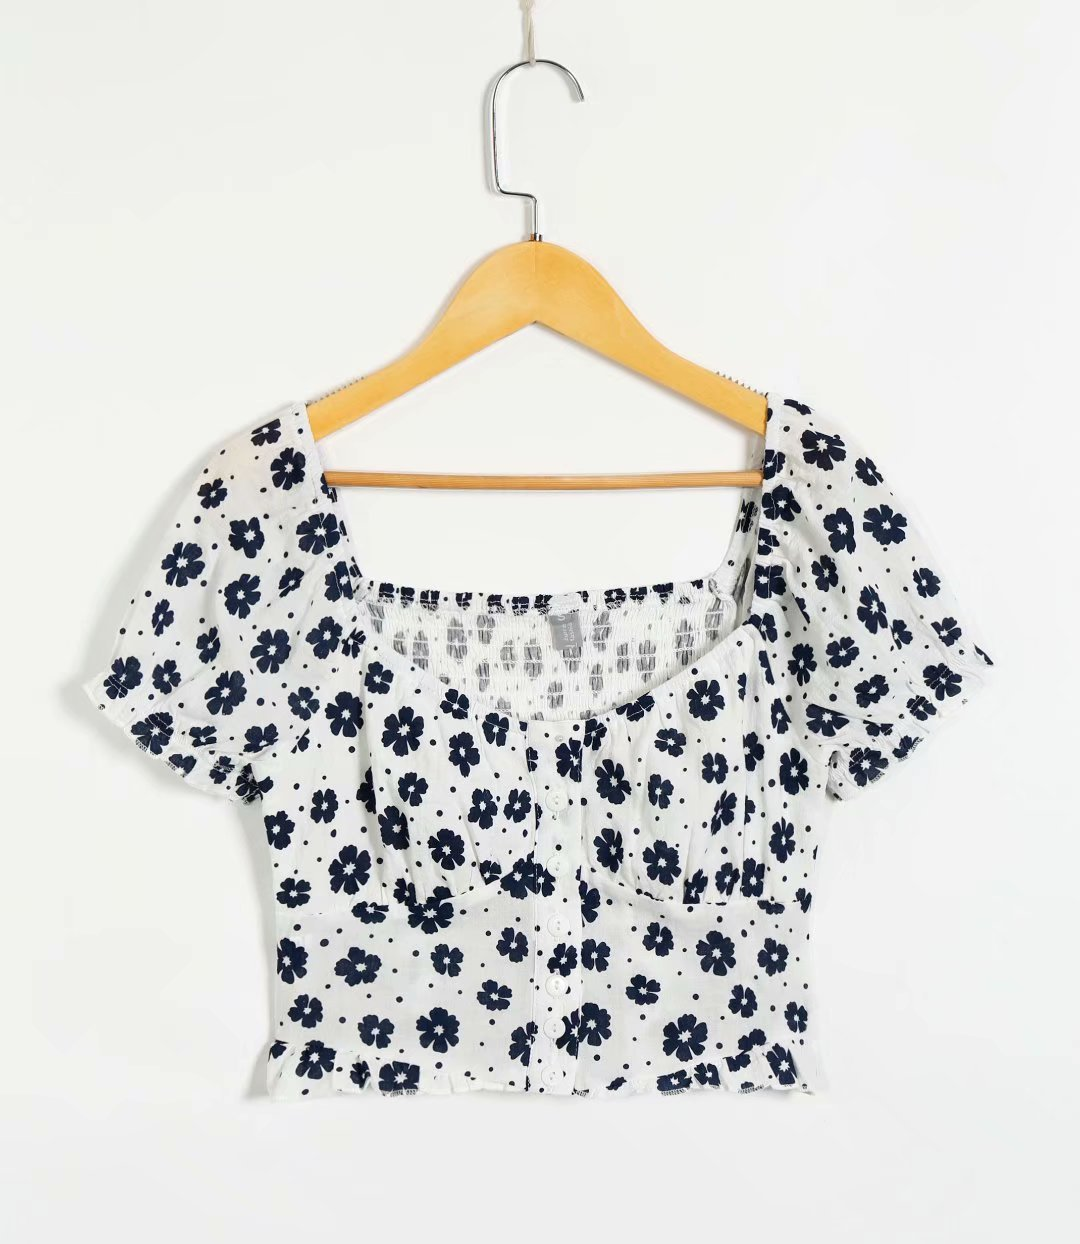 New Fashion Small Floral Square Collar Short Button Top Summer Palace Shirt Women Wholesale NHAM204814